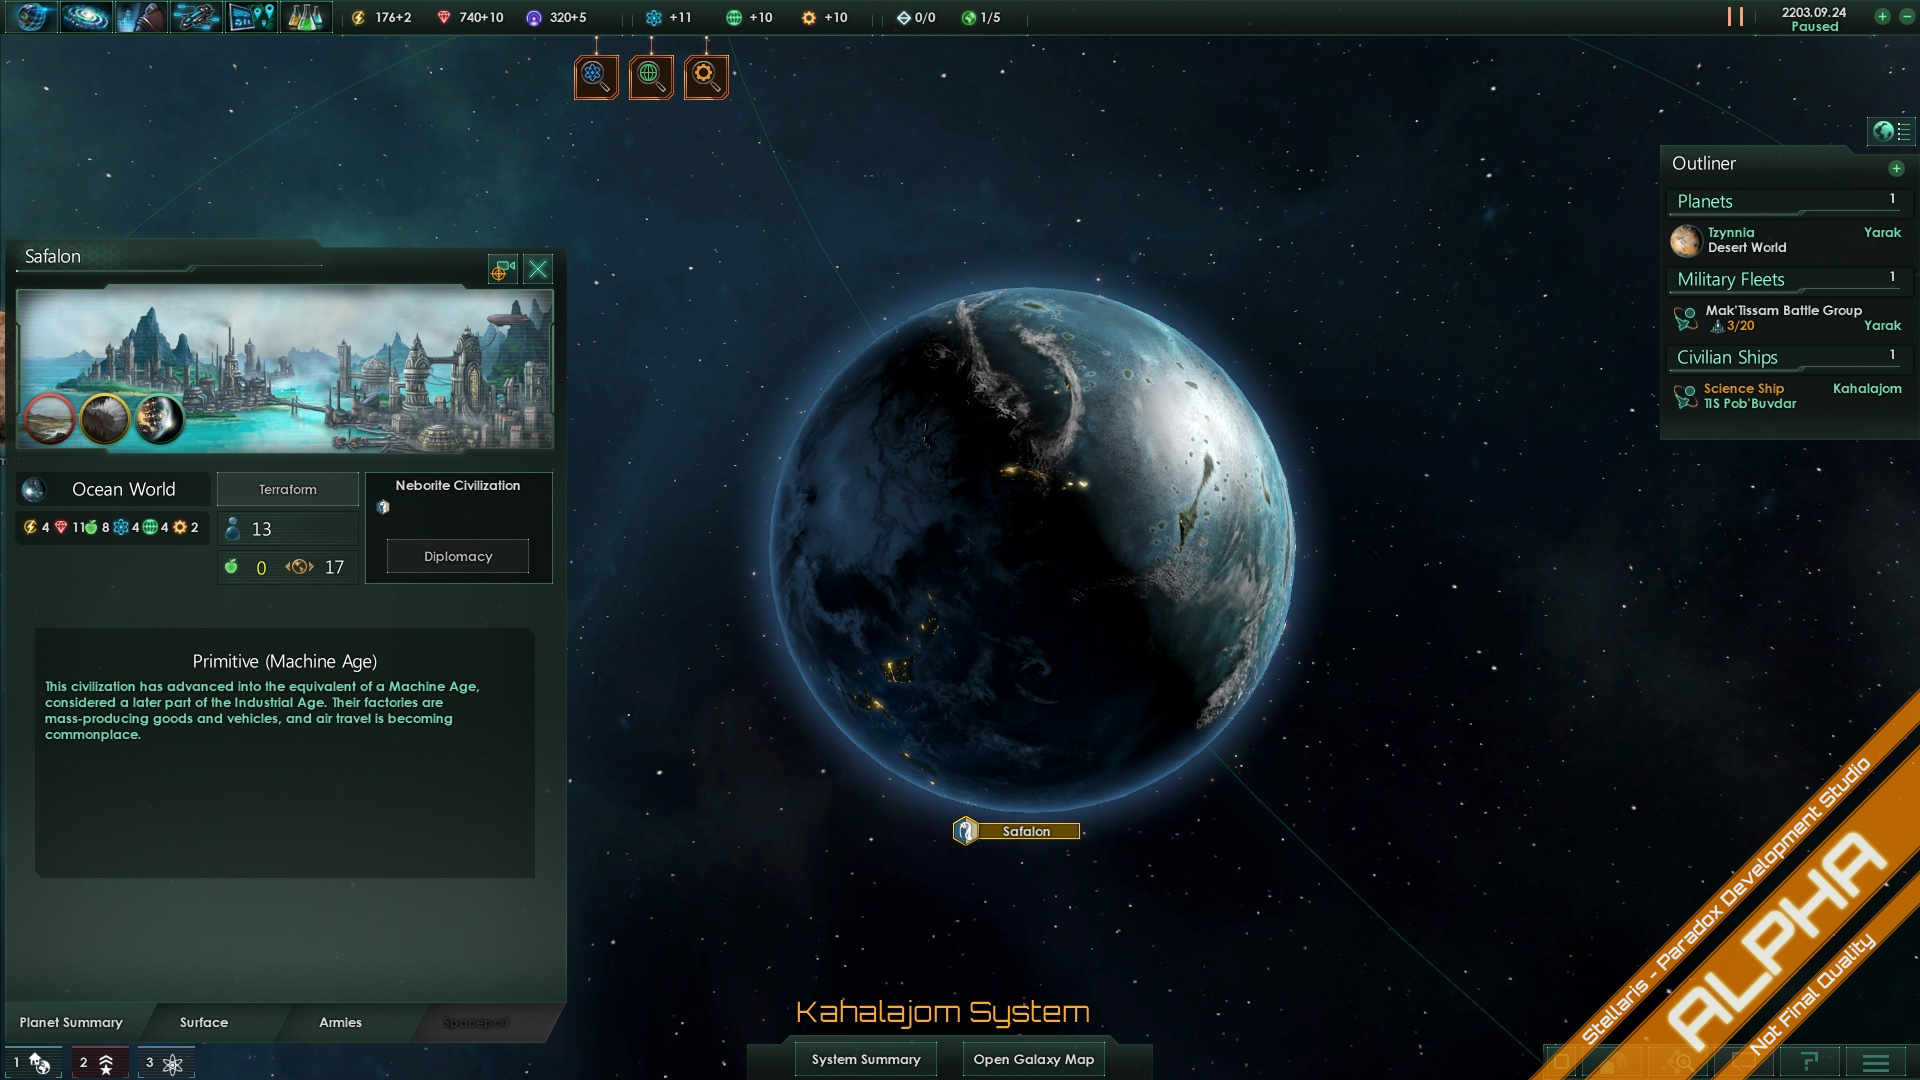 stellaris_dev_diary_13_02_20151214_primitive_civilization.jpg